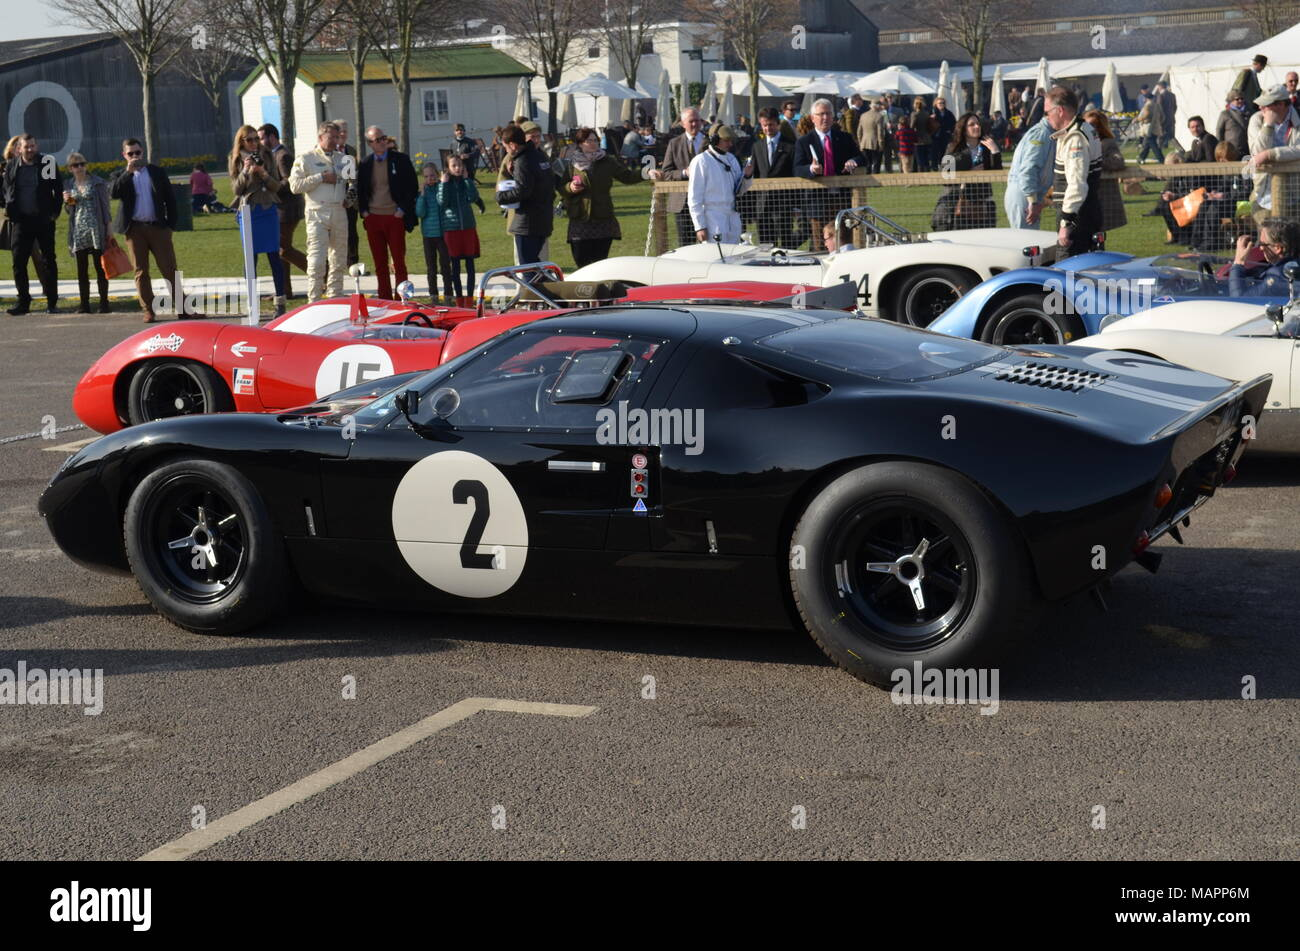 Ford Gt40 Endurance Racing Car Stock Photos & Ford Gt40 Endurance ...